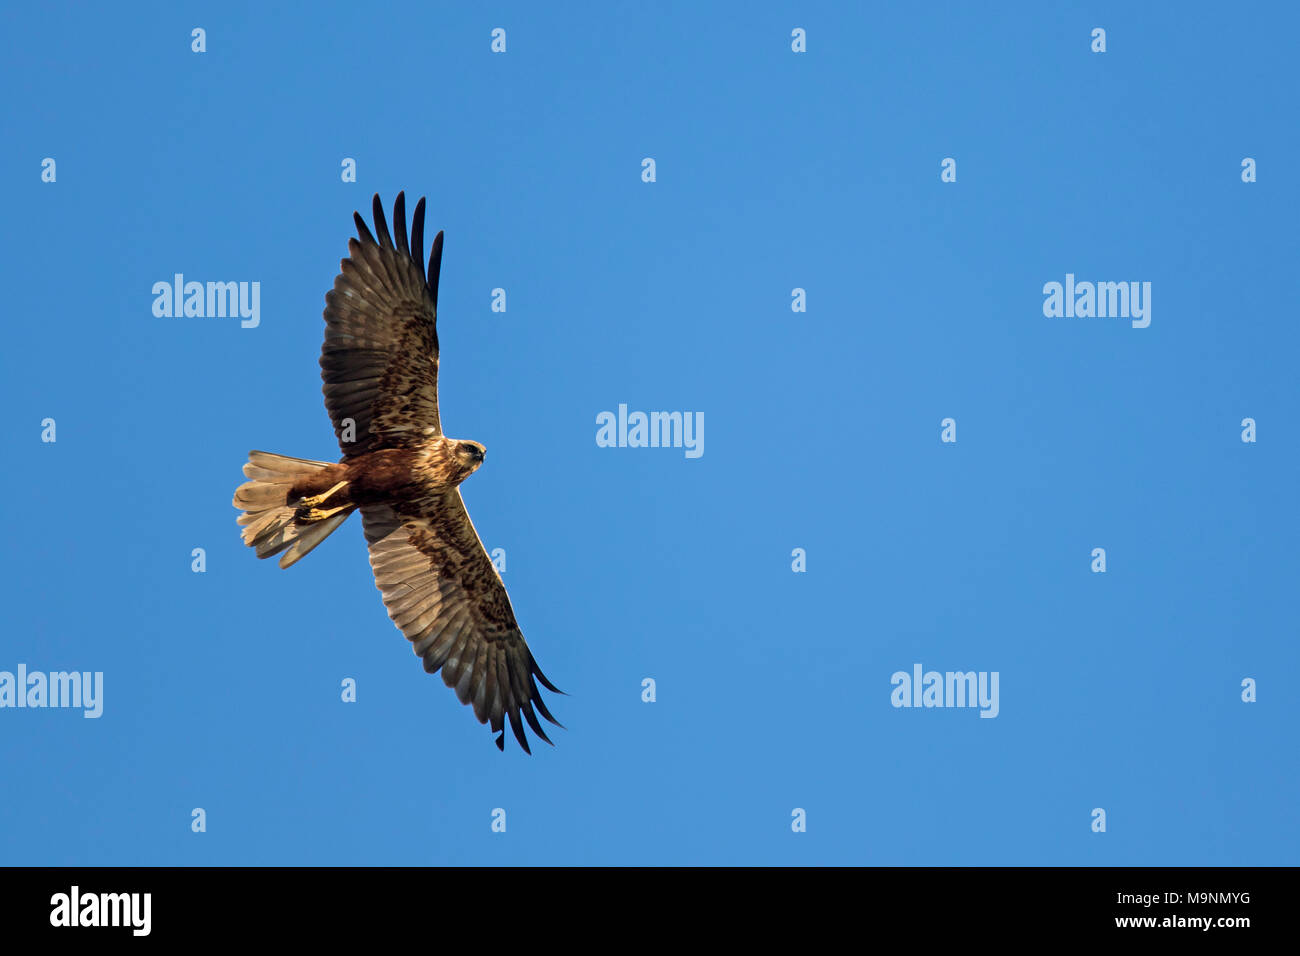 Western marsh harrier / Eurasian marsh harrier (Circus aeruginosus), female in flight against blue sky Stock Photo